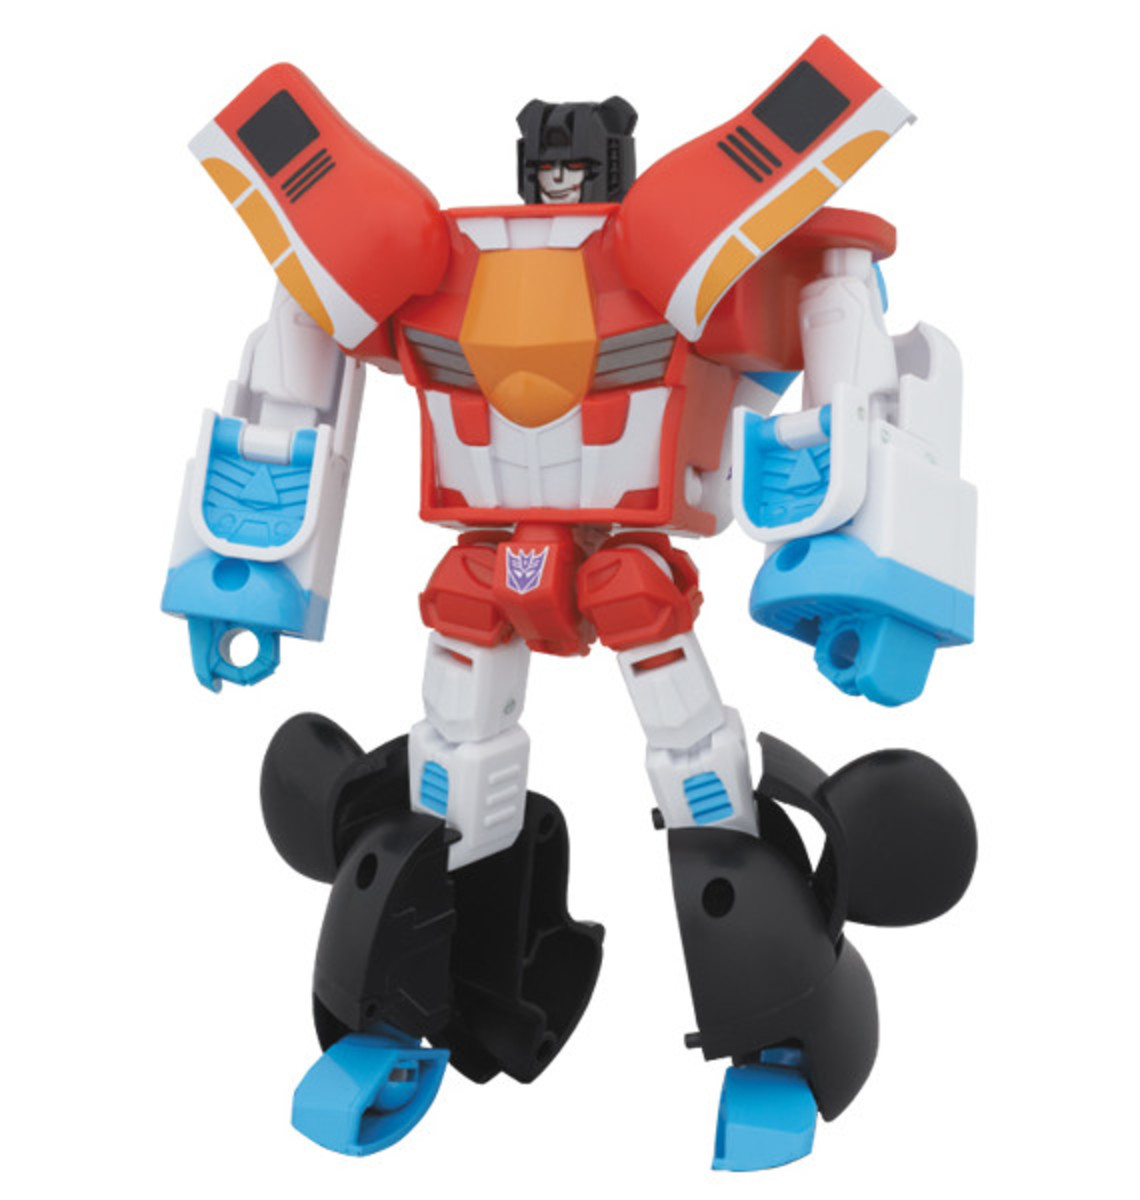 transformers-medicom-toy-transformable-bearbrick-200-percent-set-09